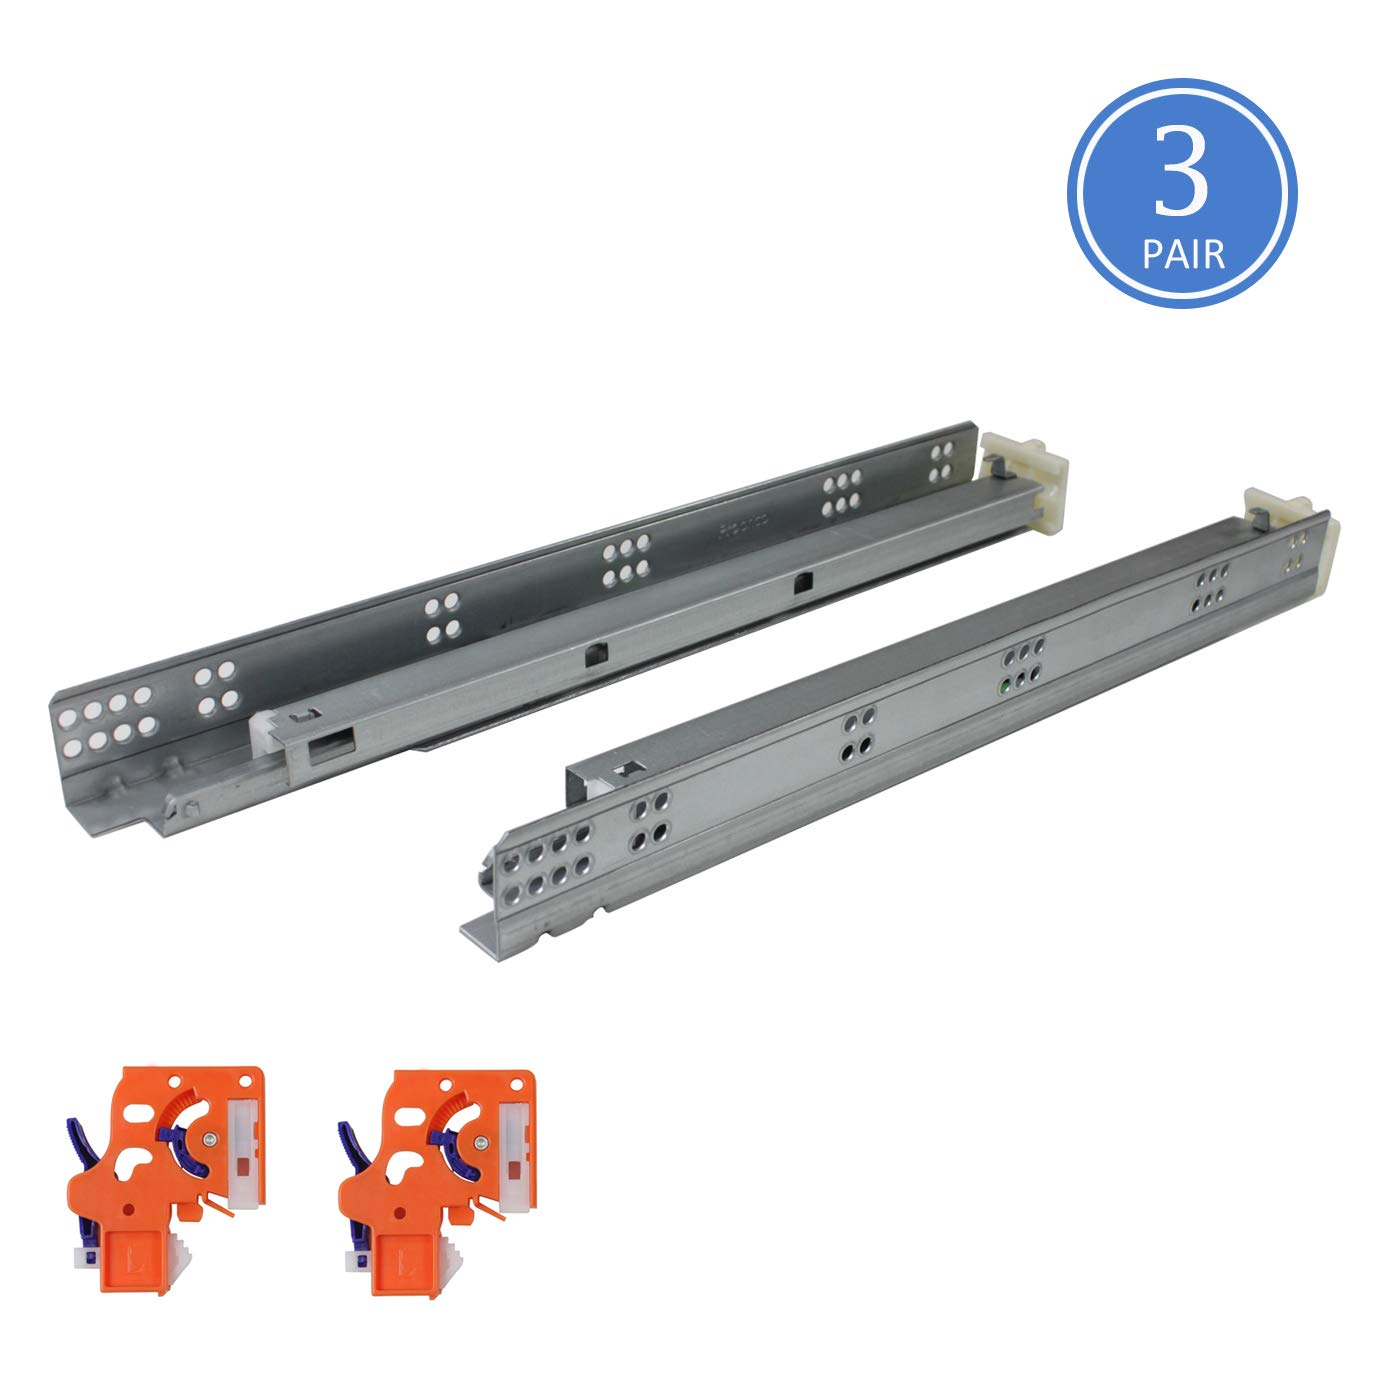 18 Inch 3 Pair Undermount Drawer Slides-Soft Close Heavy Duty Drawer Rails, Full Extension 85LB Capacity Concealed Cabinet Drawer Glides